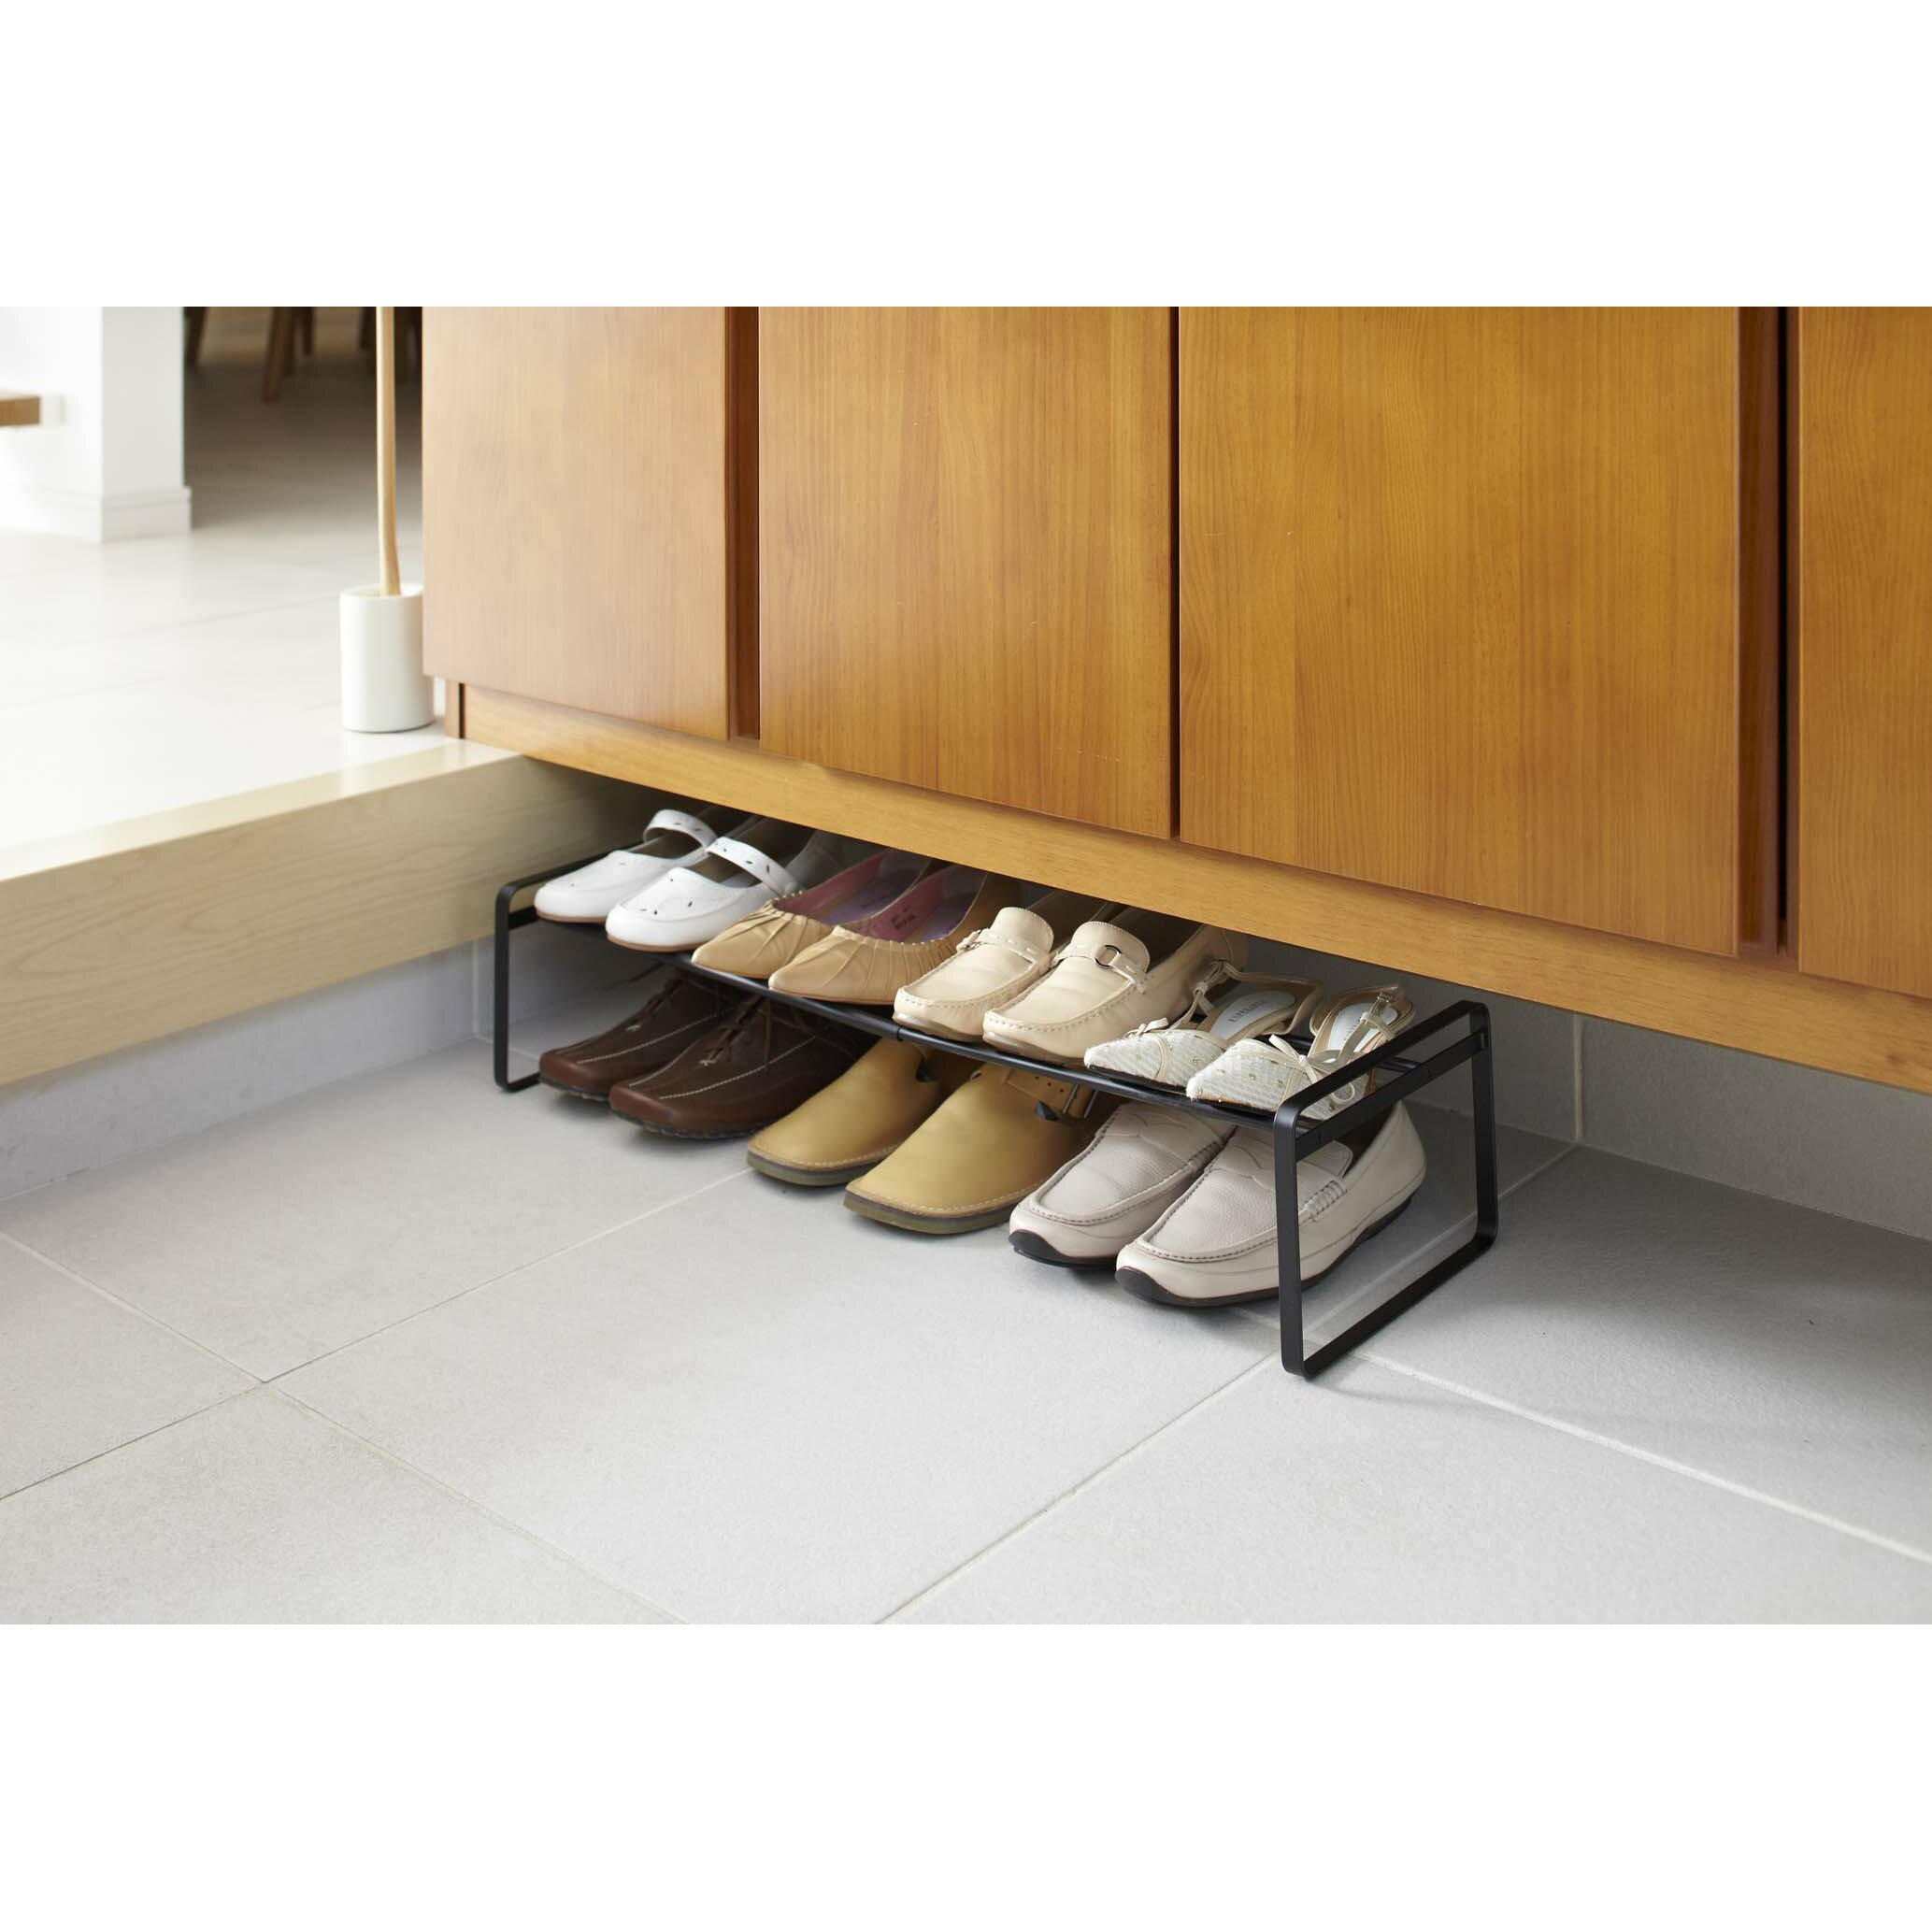 Alluring Design Walk In Closet Ideas With Shoes Storage Racks And Double Hanging Bars